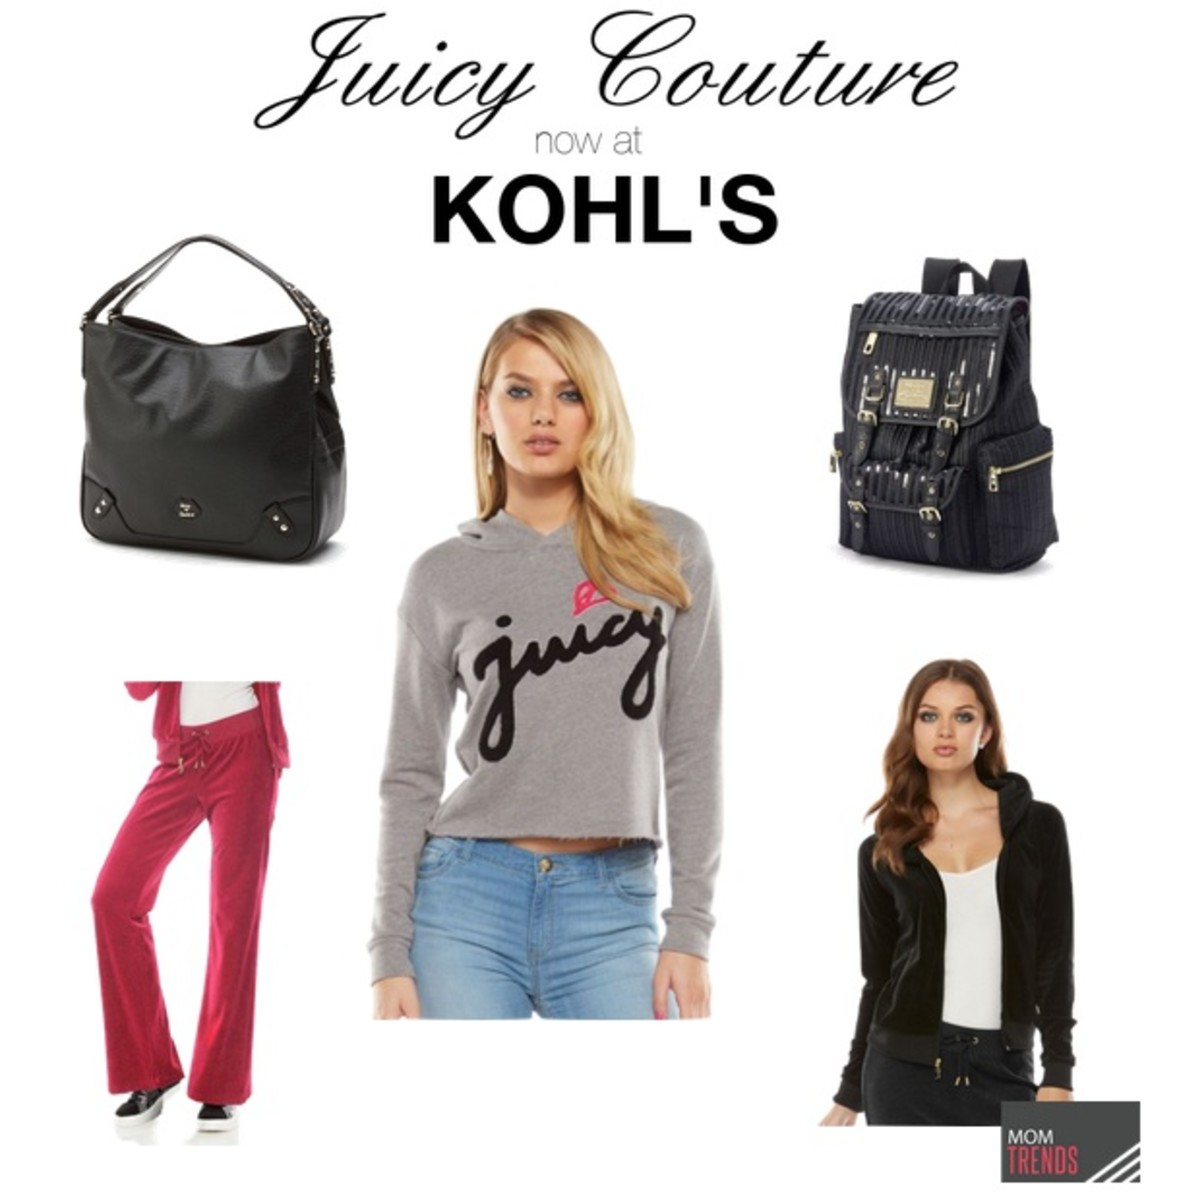 Juicy Couture at Kohls